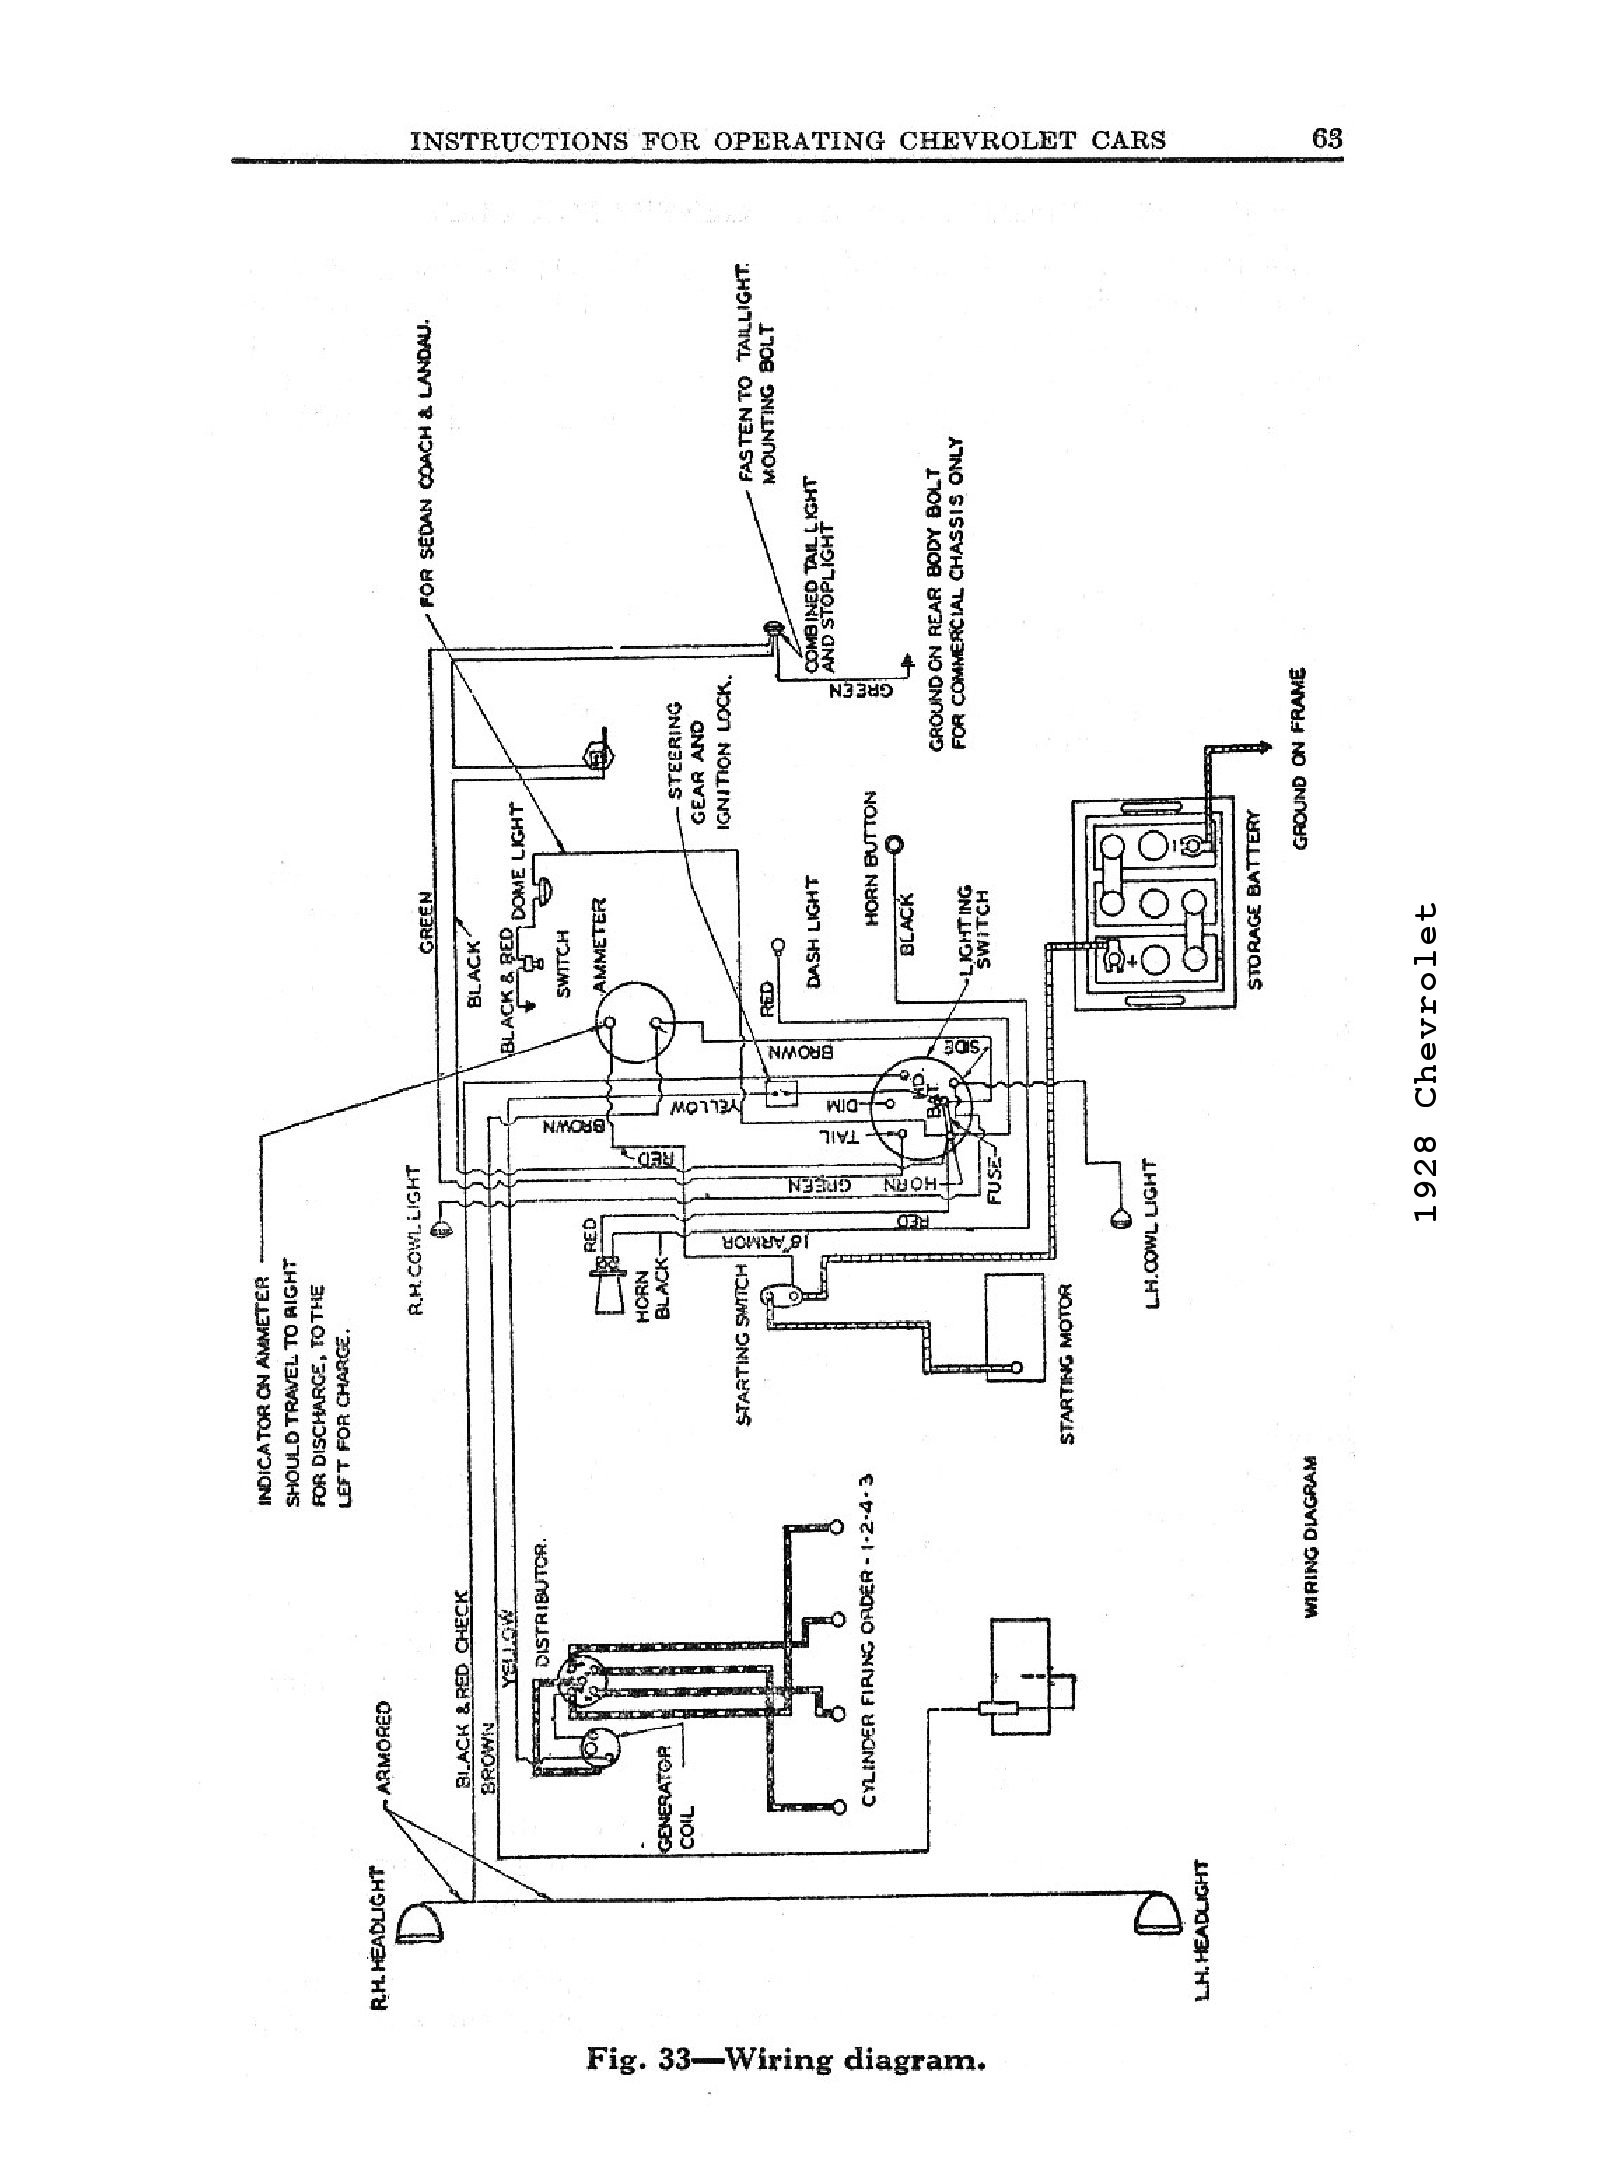 Cim on 1928 Chevrolet Wiring Diagram